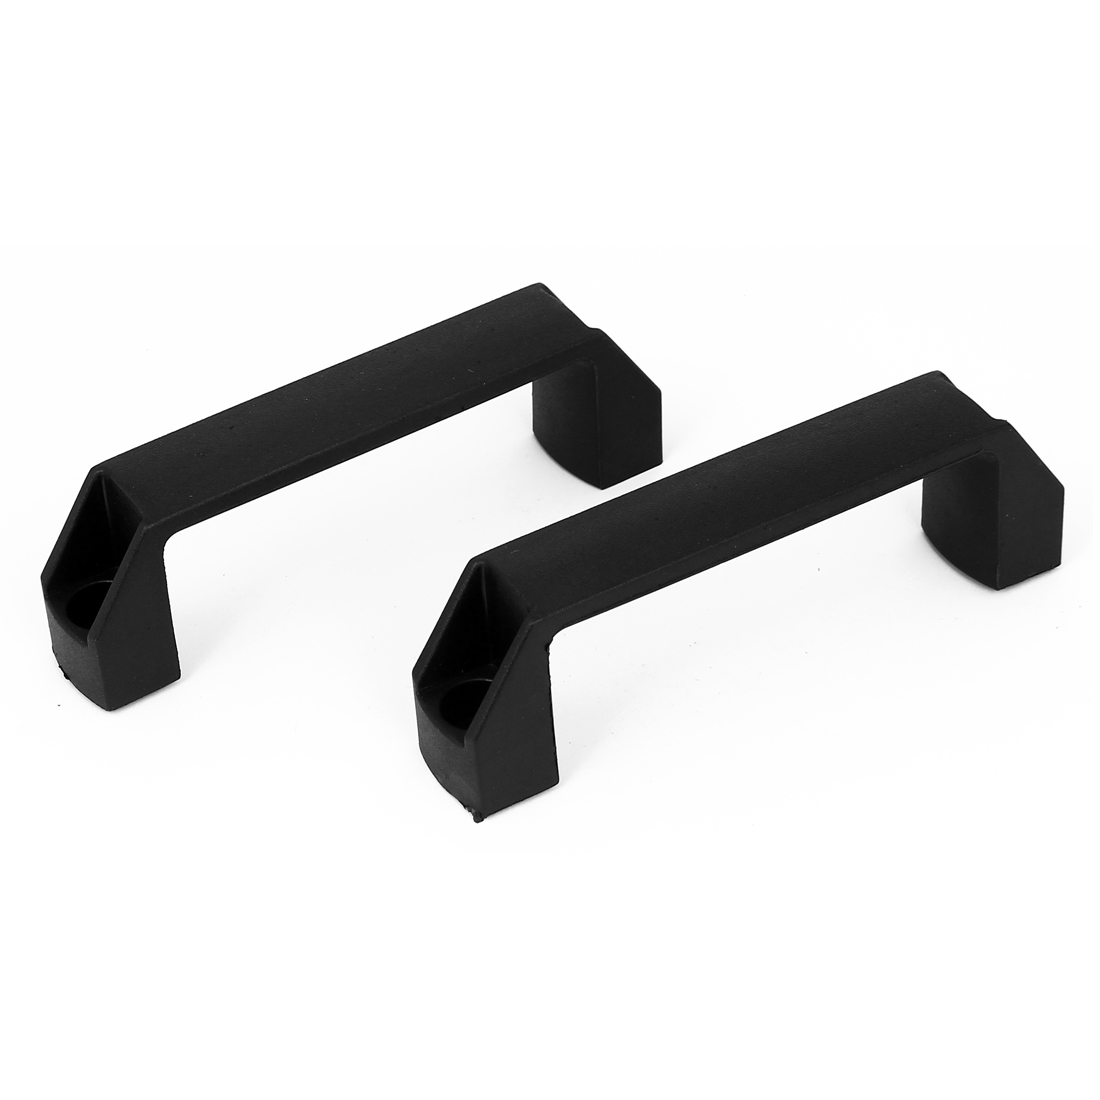 "2pcs 5.4"" Long Rectangle Plastic Pull Handle Knob Black for Cabinet Cupboard Door"